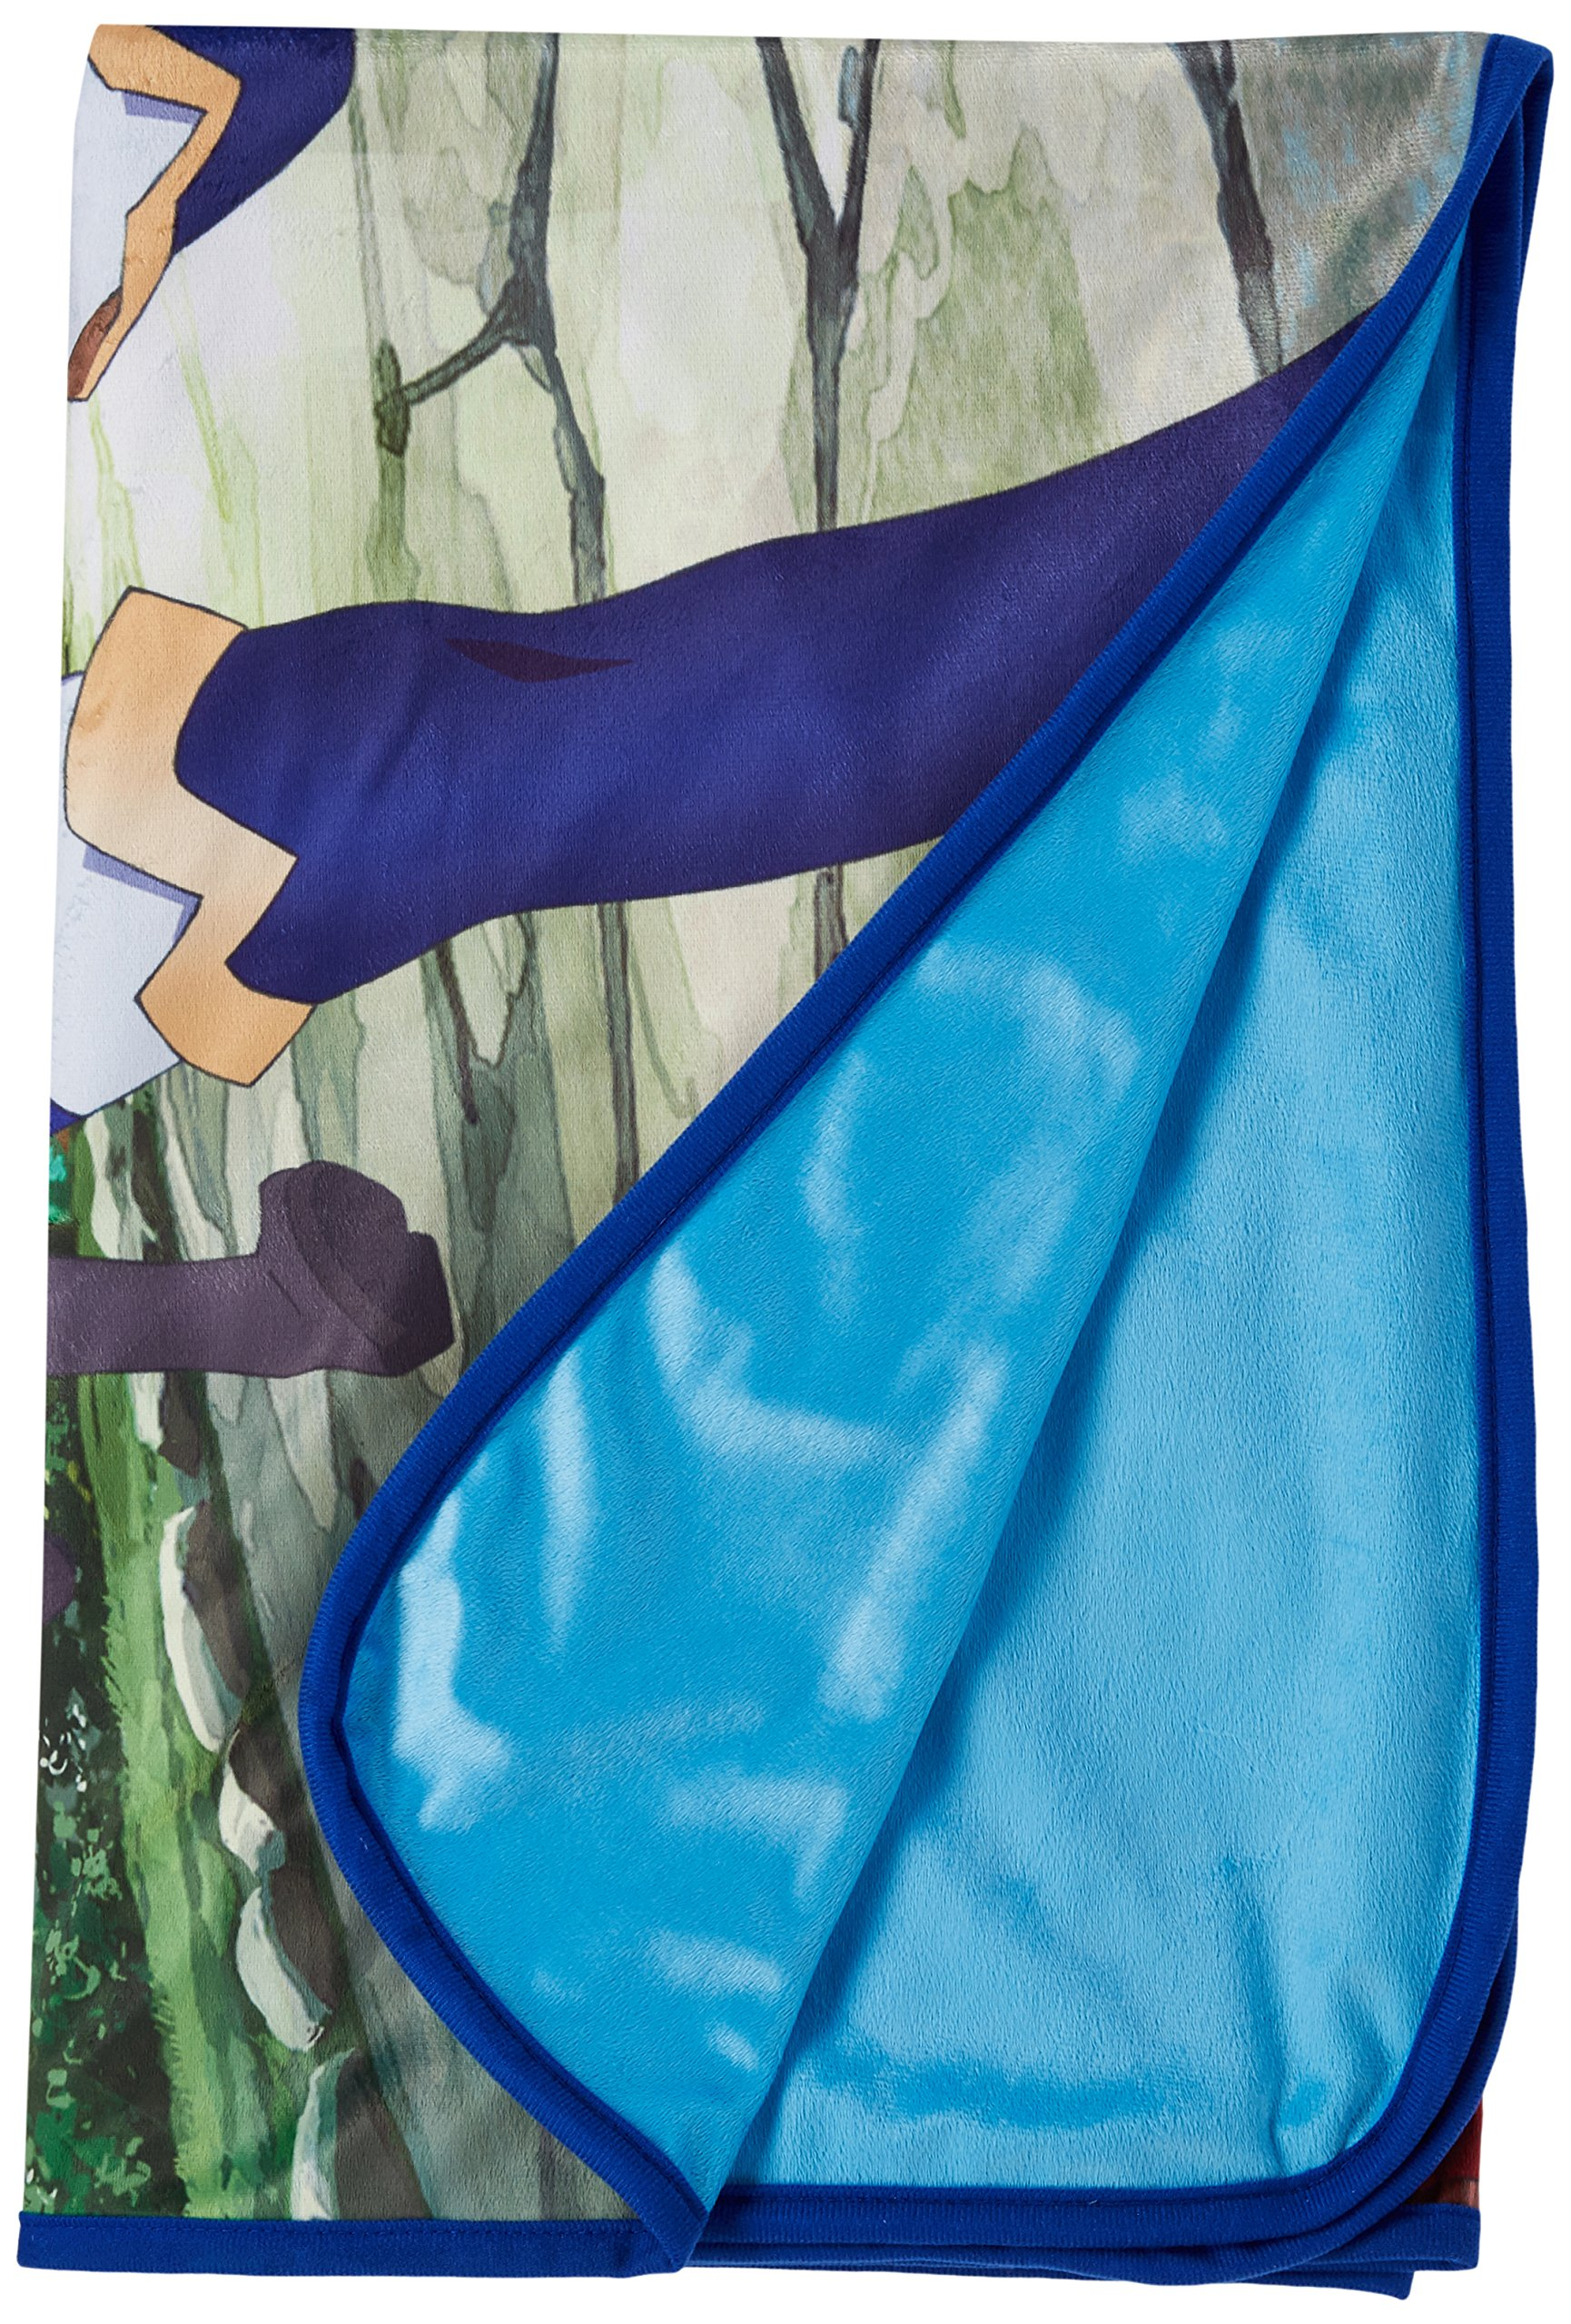 KONOSUBA Group Sublimation Throw Blanket, Multicolored by KONOSUBA (Image #1)